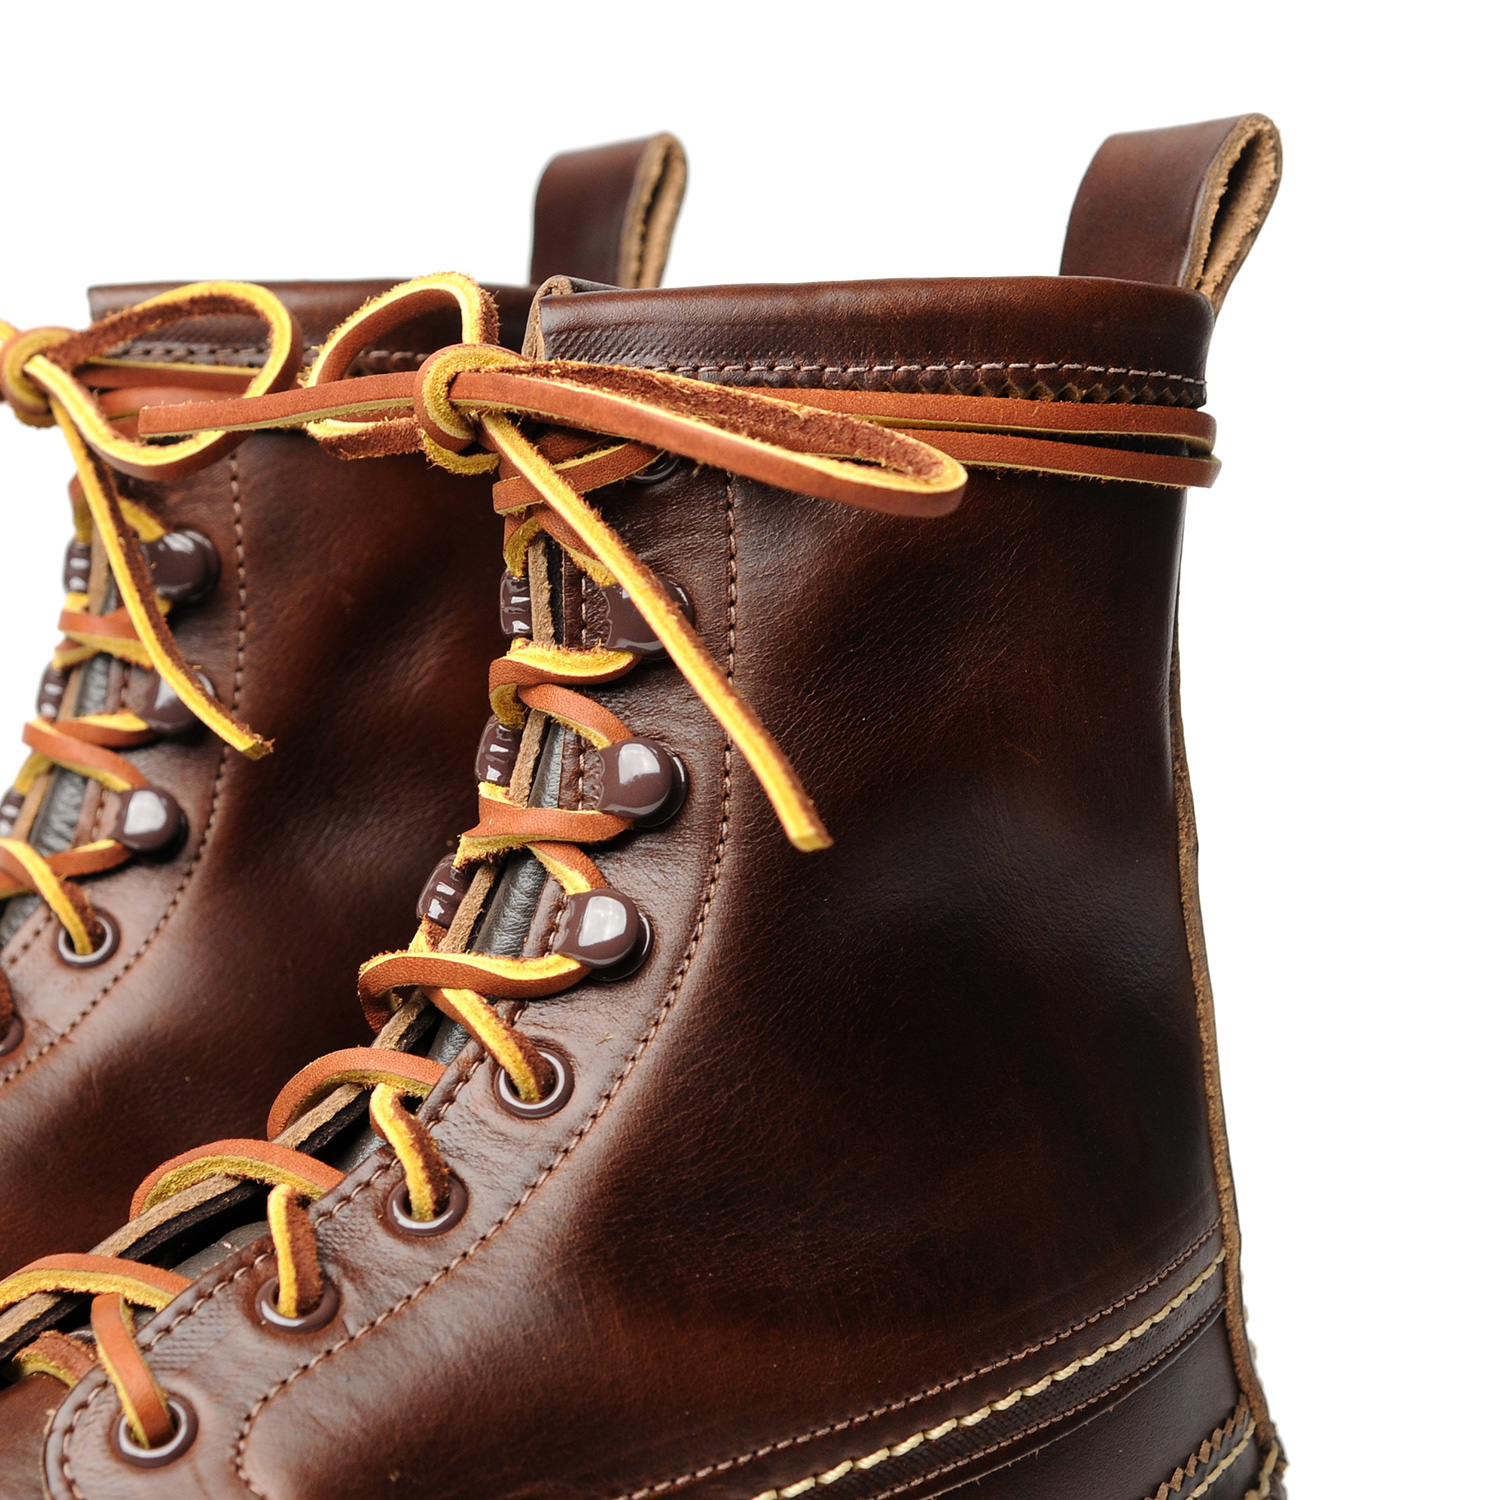 03405PM-SP-MAINE-GUIDE-DB-BOOTS-G-BROWN,-EYELET.jpg